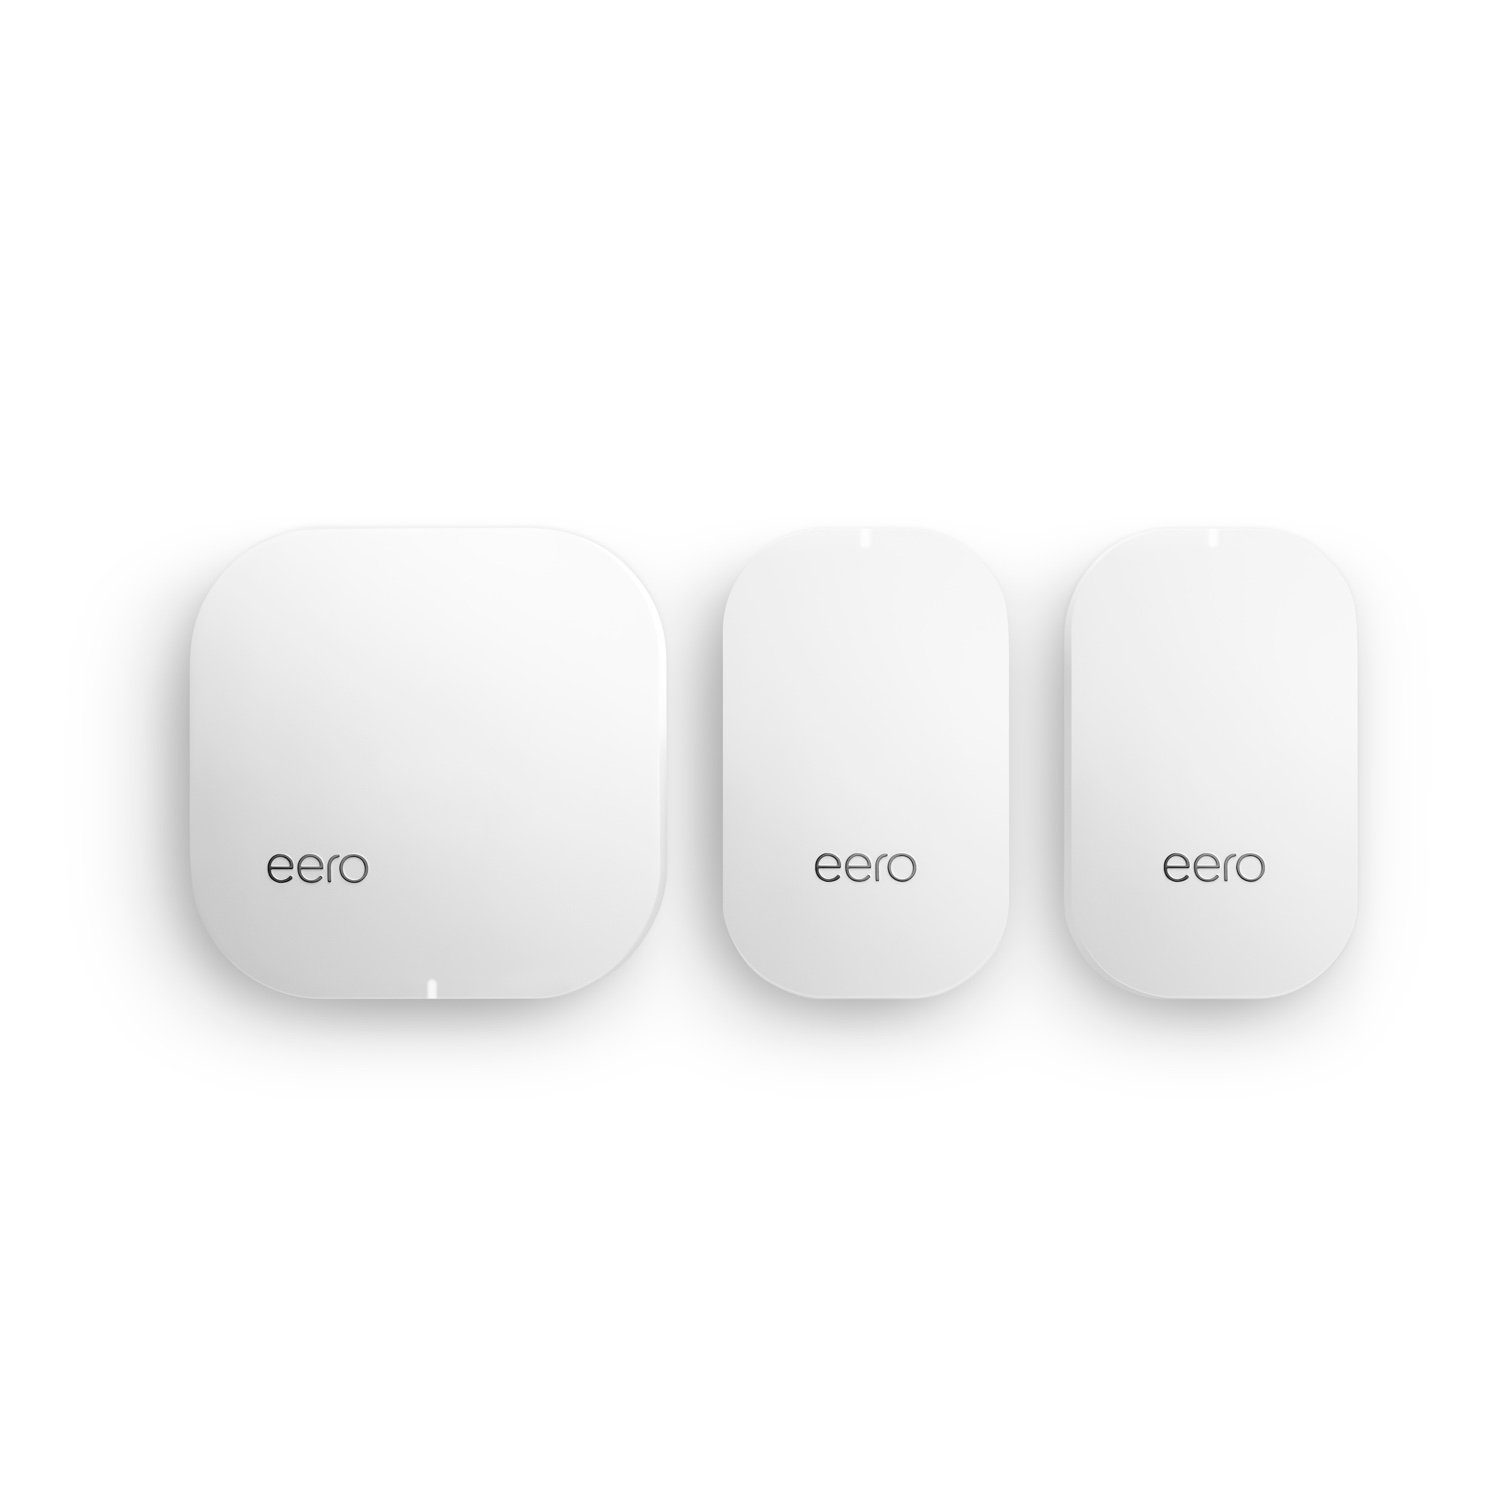 eero Home WiFi System (1 eero + 2 eero Beacons) - Advanced Tri-Band Mesh WiFi Technology and WPA2 Encryption to Replace WLAN Routers and WiFi Range Extenders - Coverage: 2-4 Bedroom Home